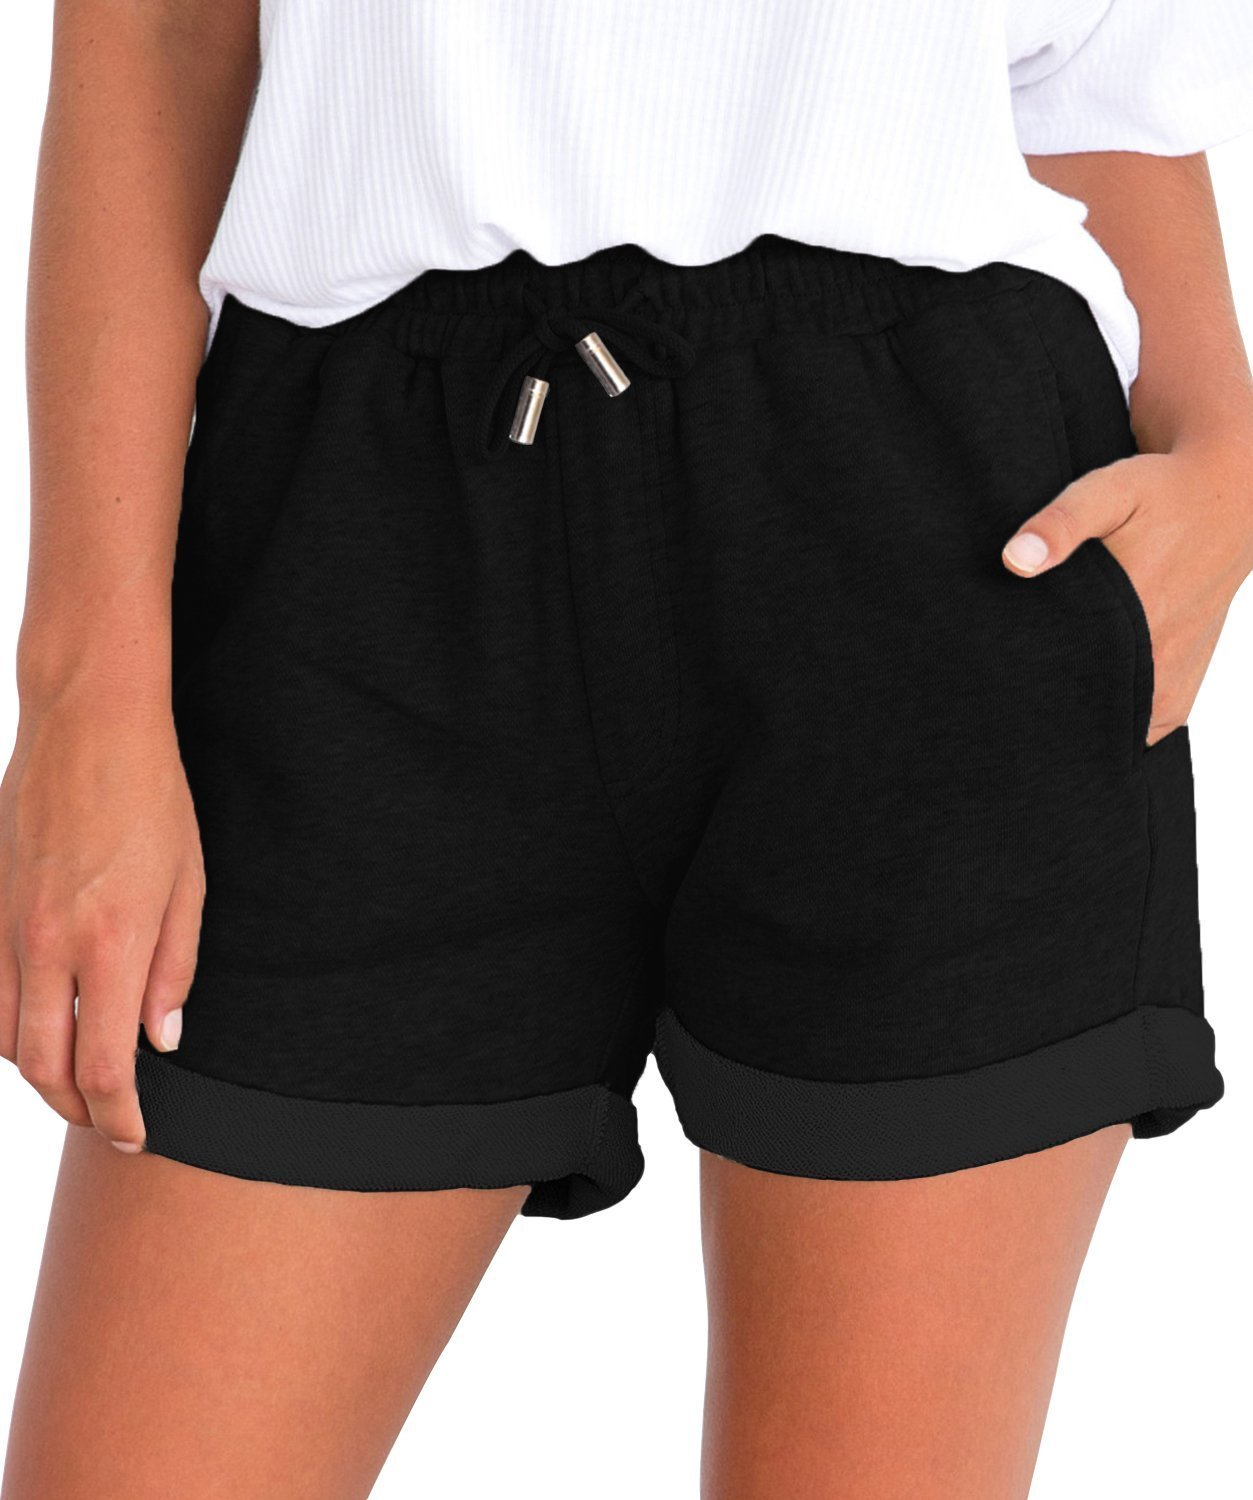 Tengo Women Summer Beach Shorts Juniors Folded Hem Shorts with Drawstring(Black,M)